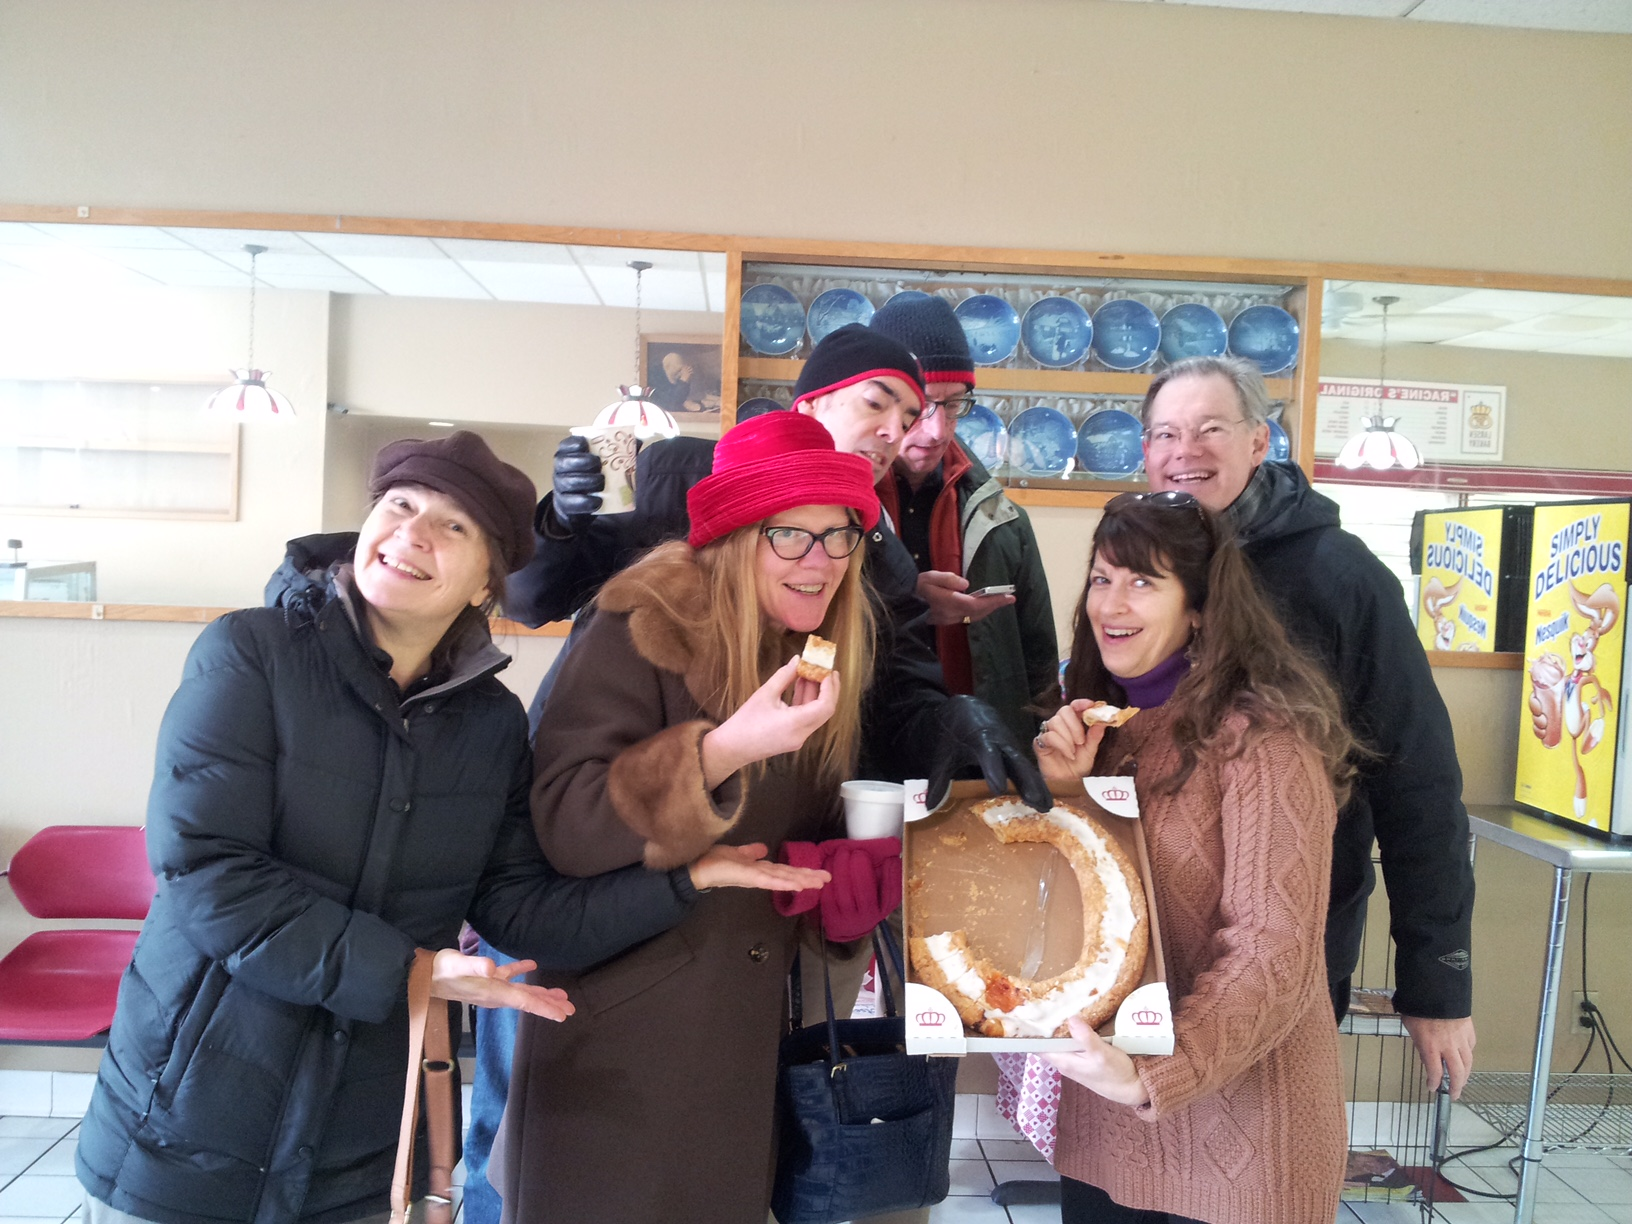 Racine is the Kringle Capital of the World! And this was our fourth of the morning. The only reason we're still smiling is that it was apricot and oh-so delicious....